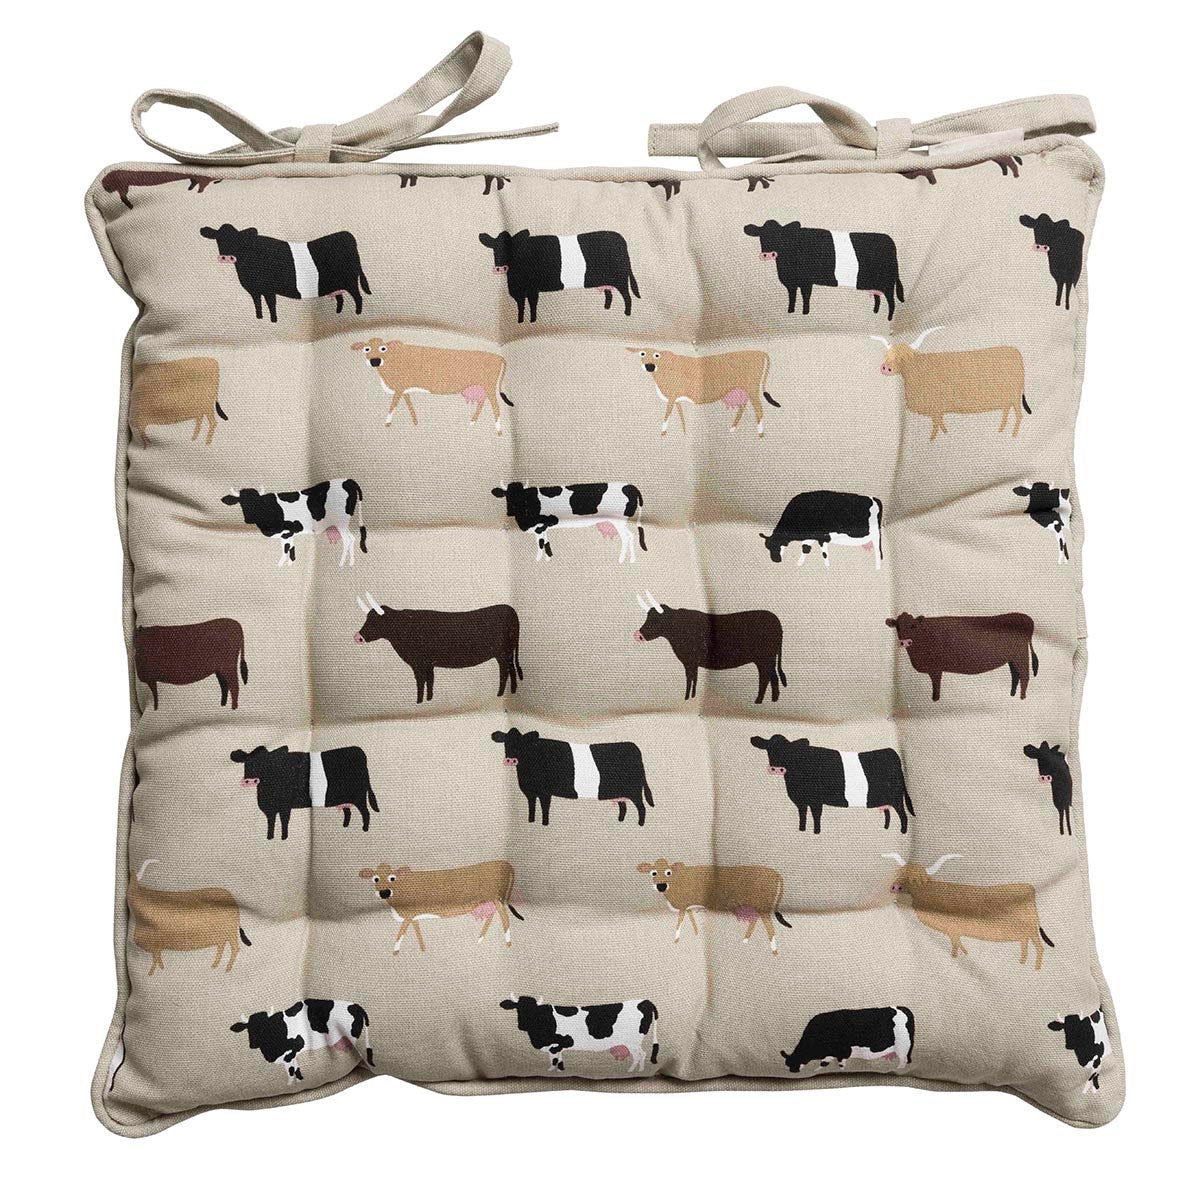 Cows Chair Pad